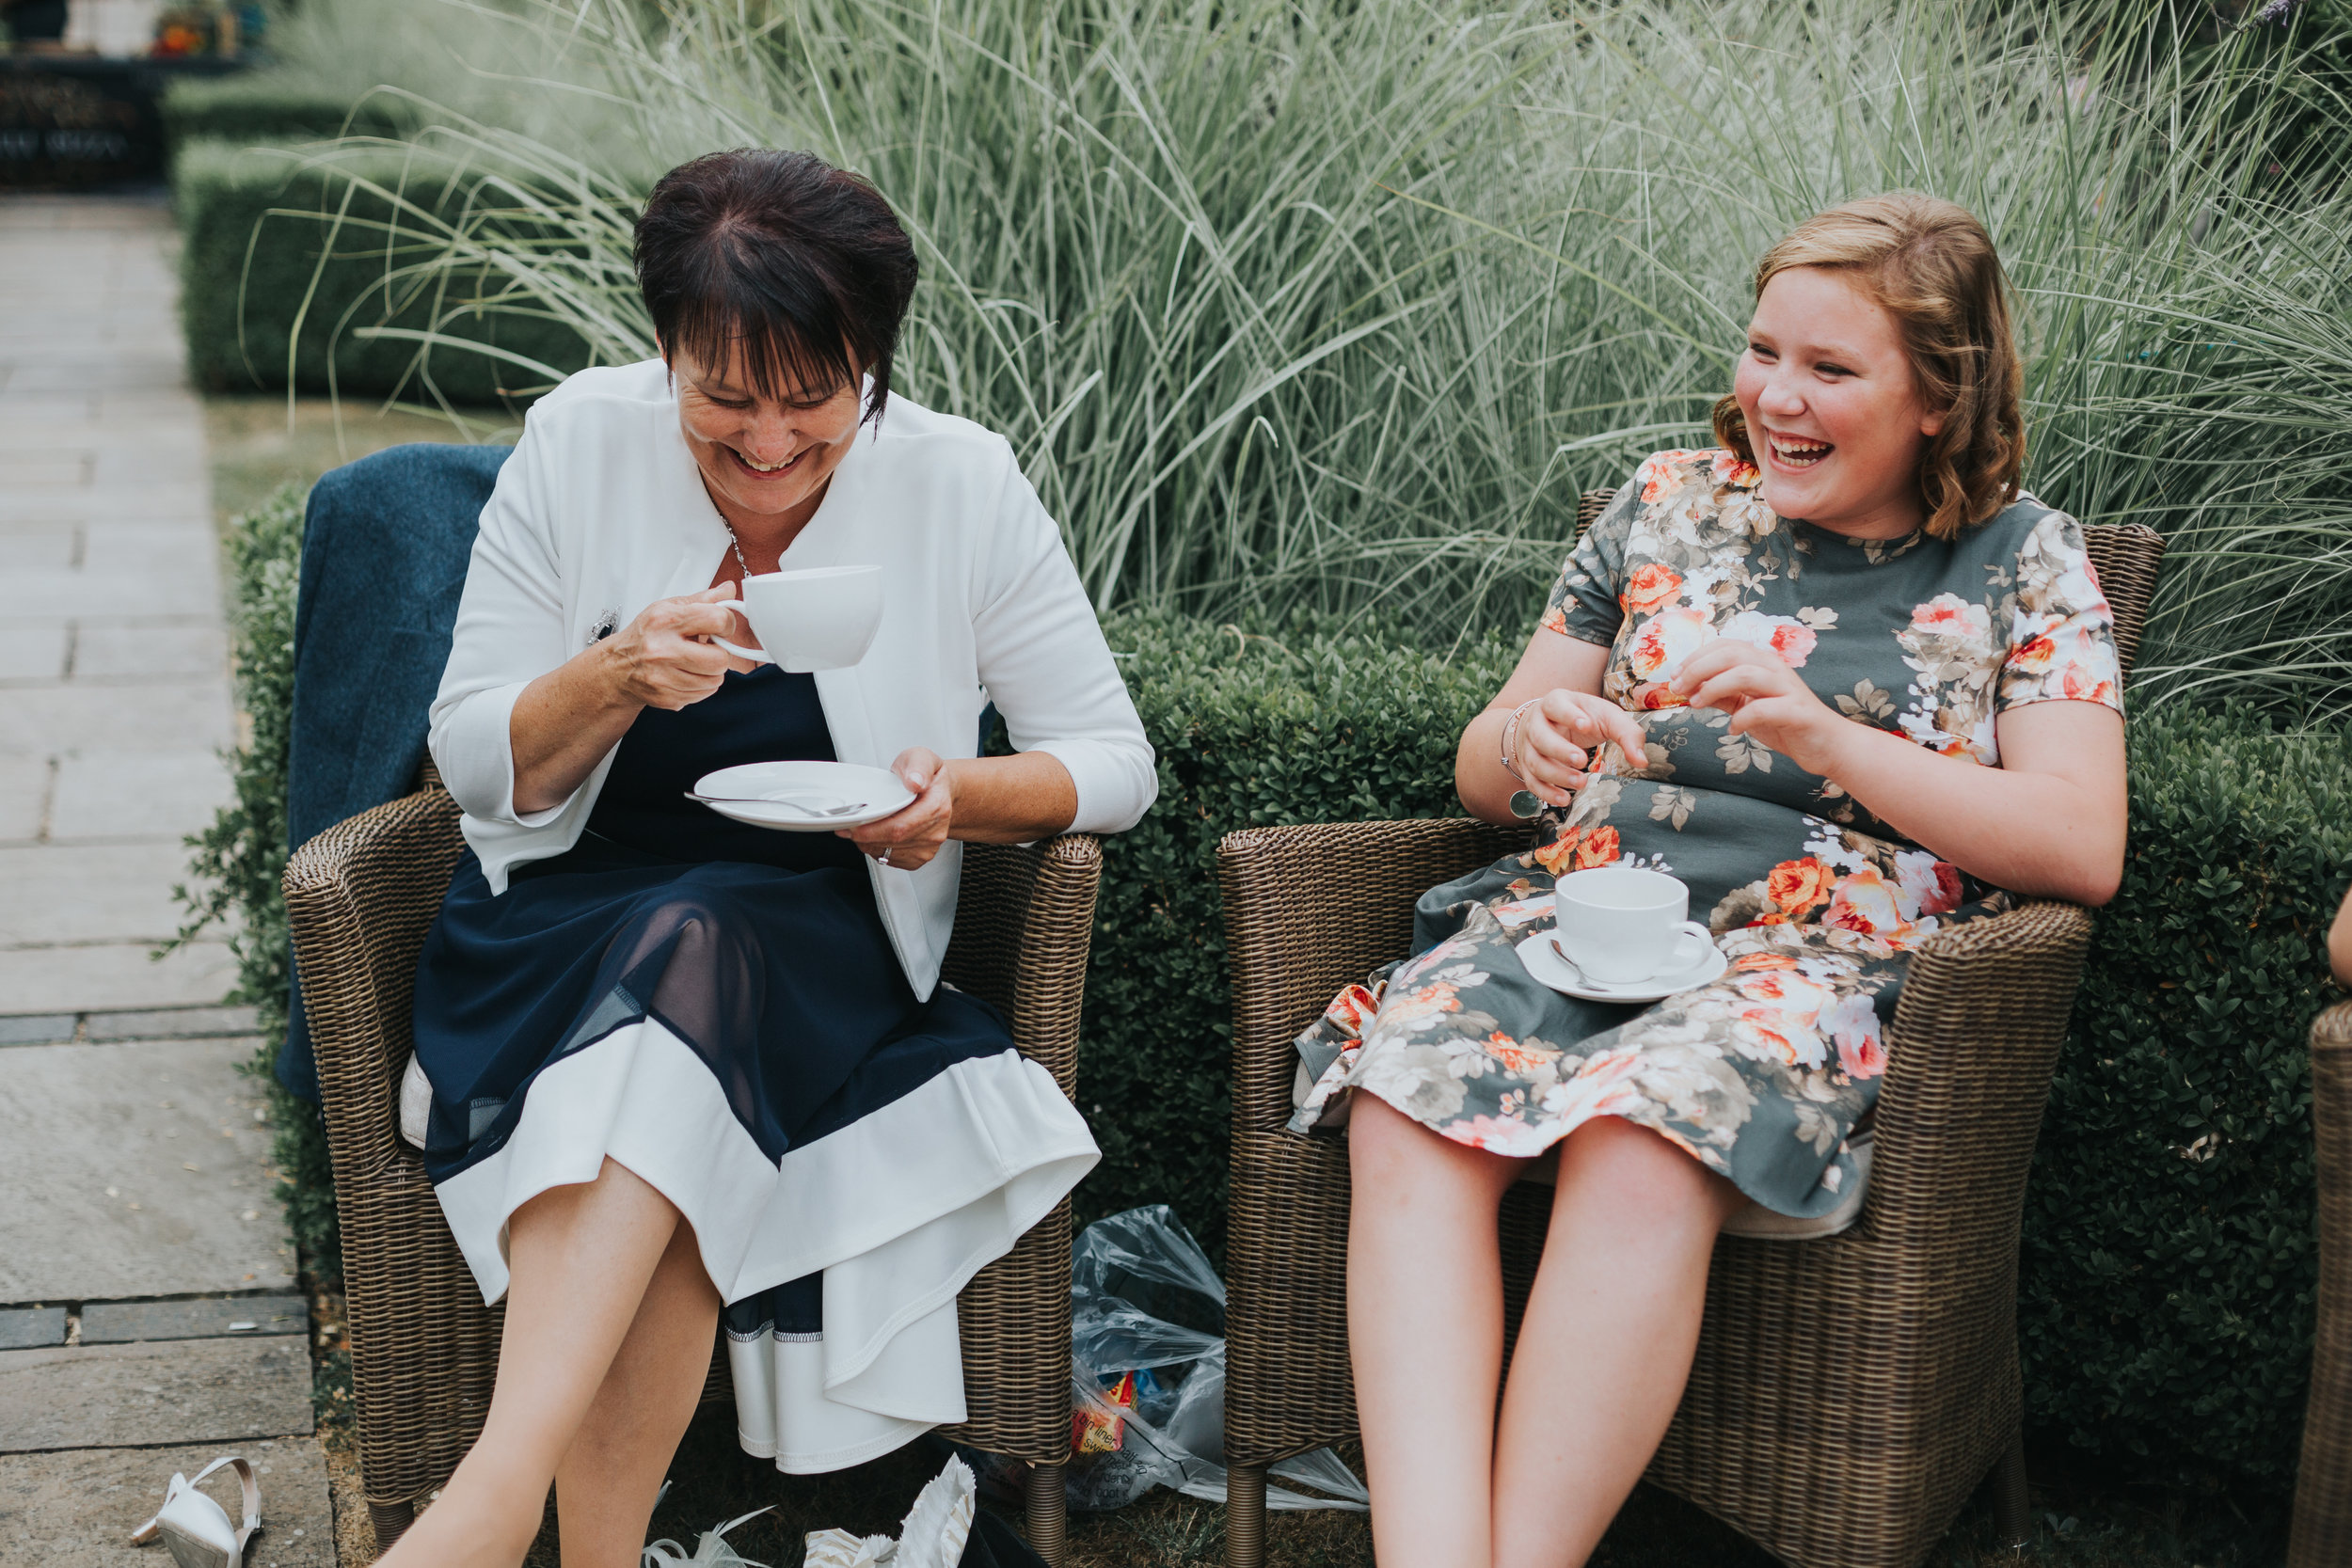 Two female guests laughing together while drinking a cup of tea.